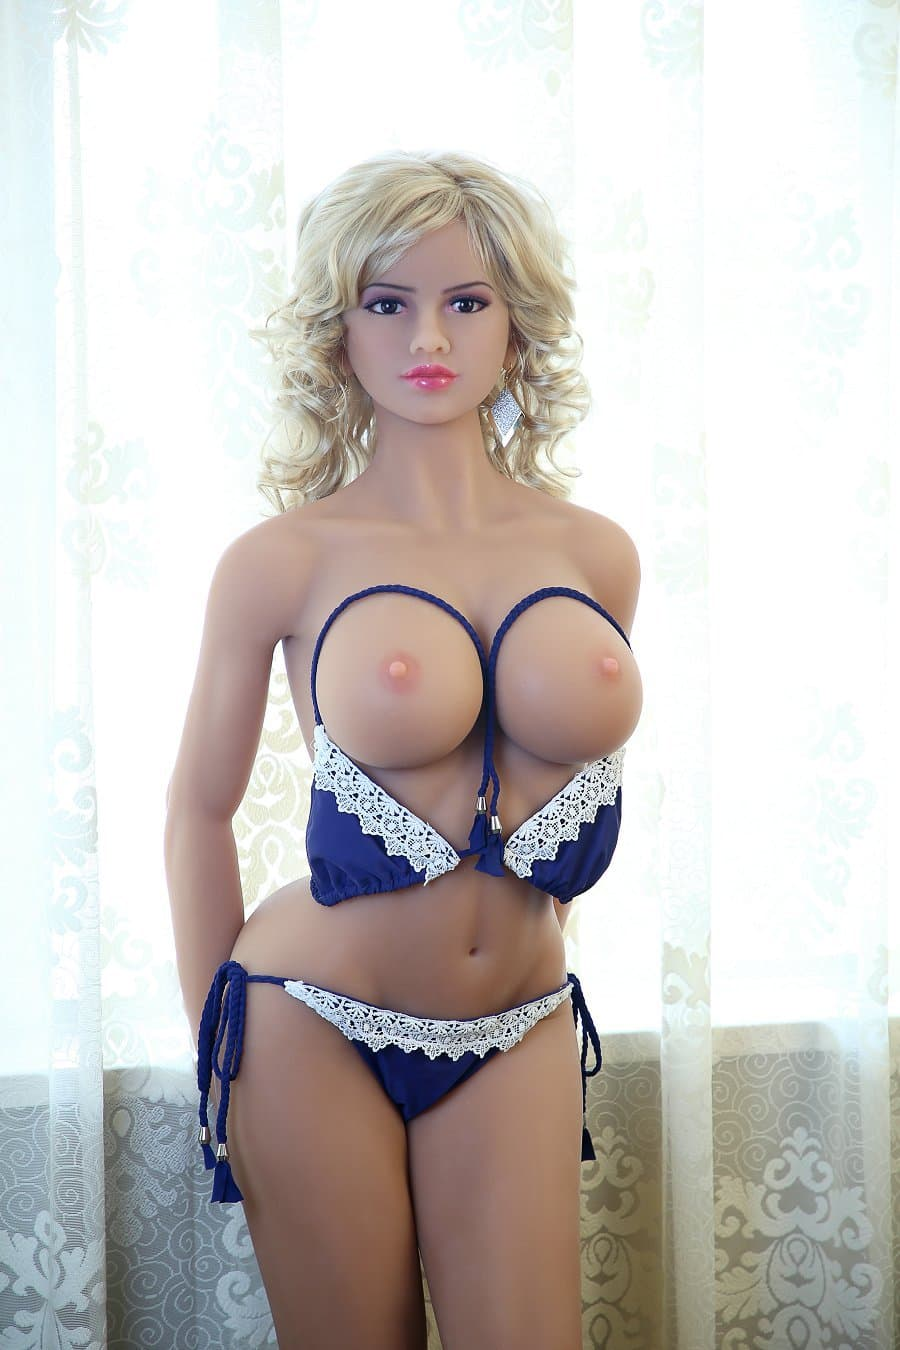 diahnne 168cm af blonde big boobs athletic tan skin tpe sex doll(9)